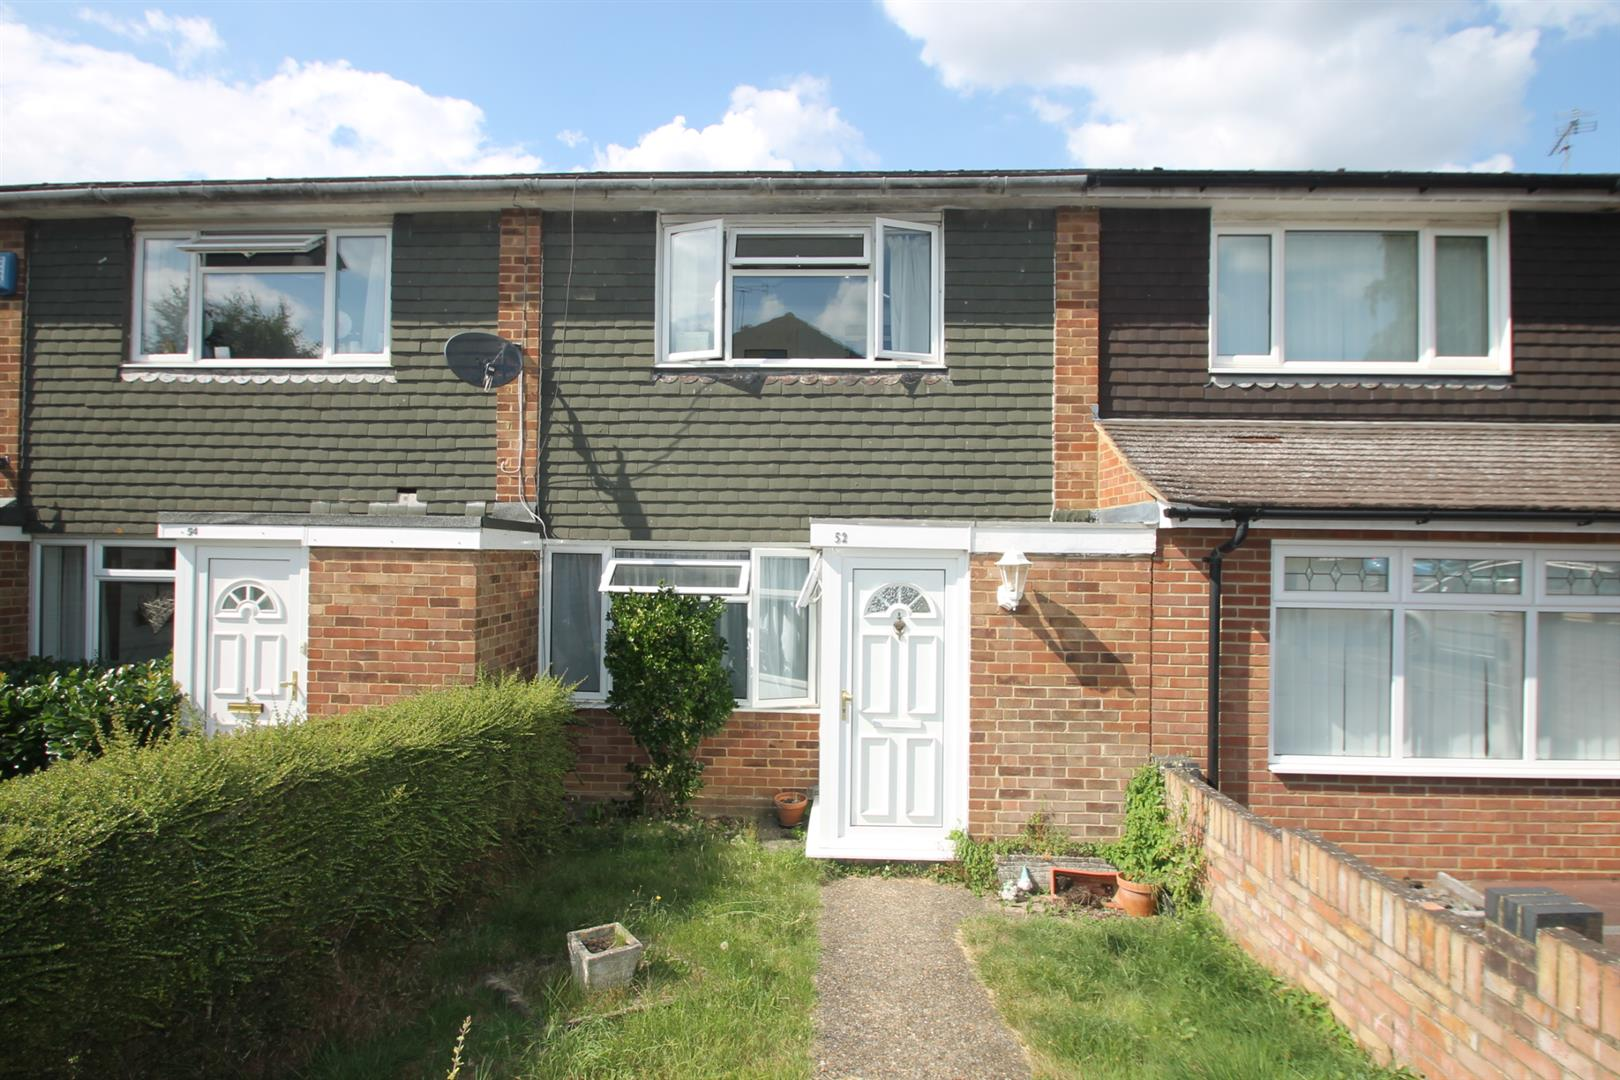 2 bedroom house for sale in maidstone for 3 bedroom houses to buy in reading